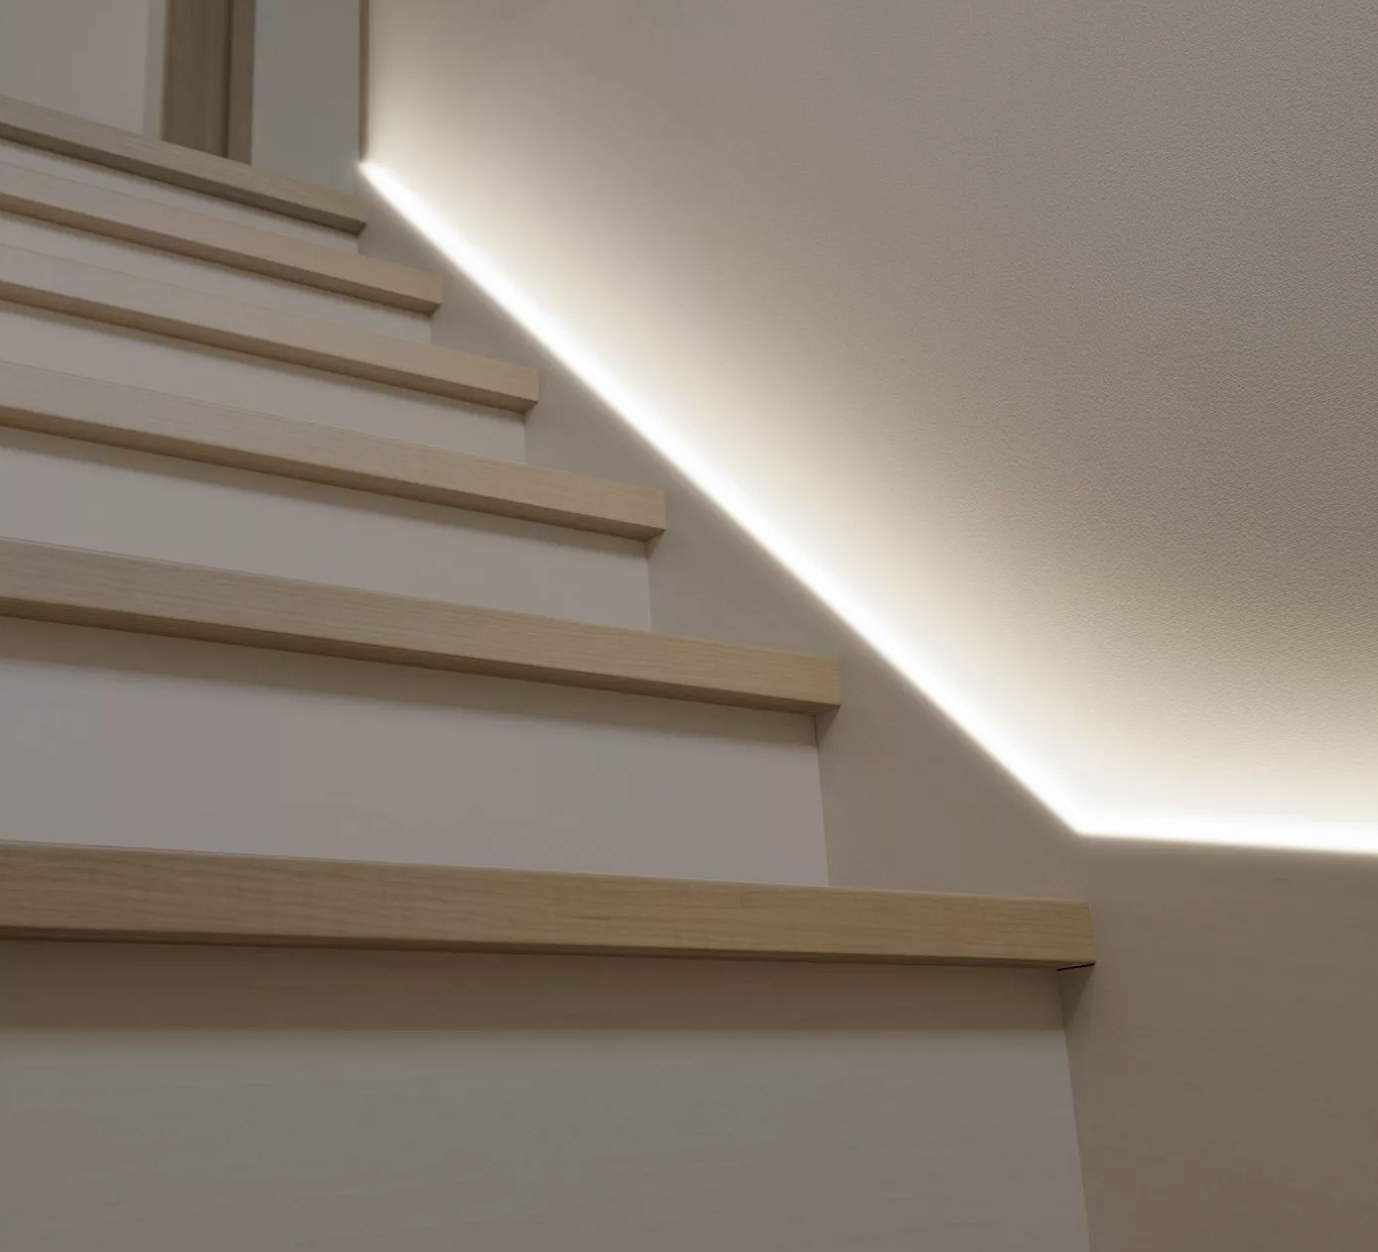 LED lights on the edge of stairs lit up